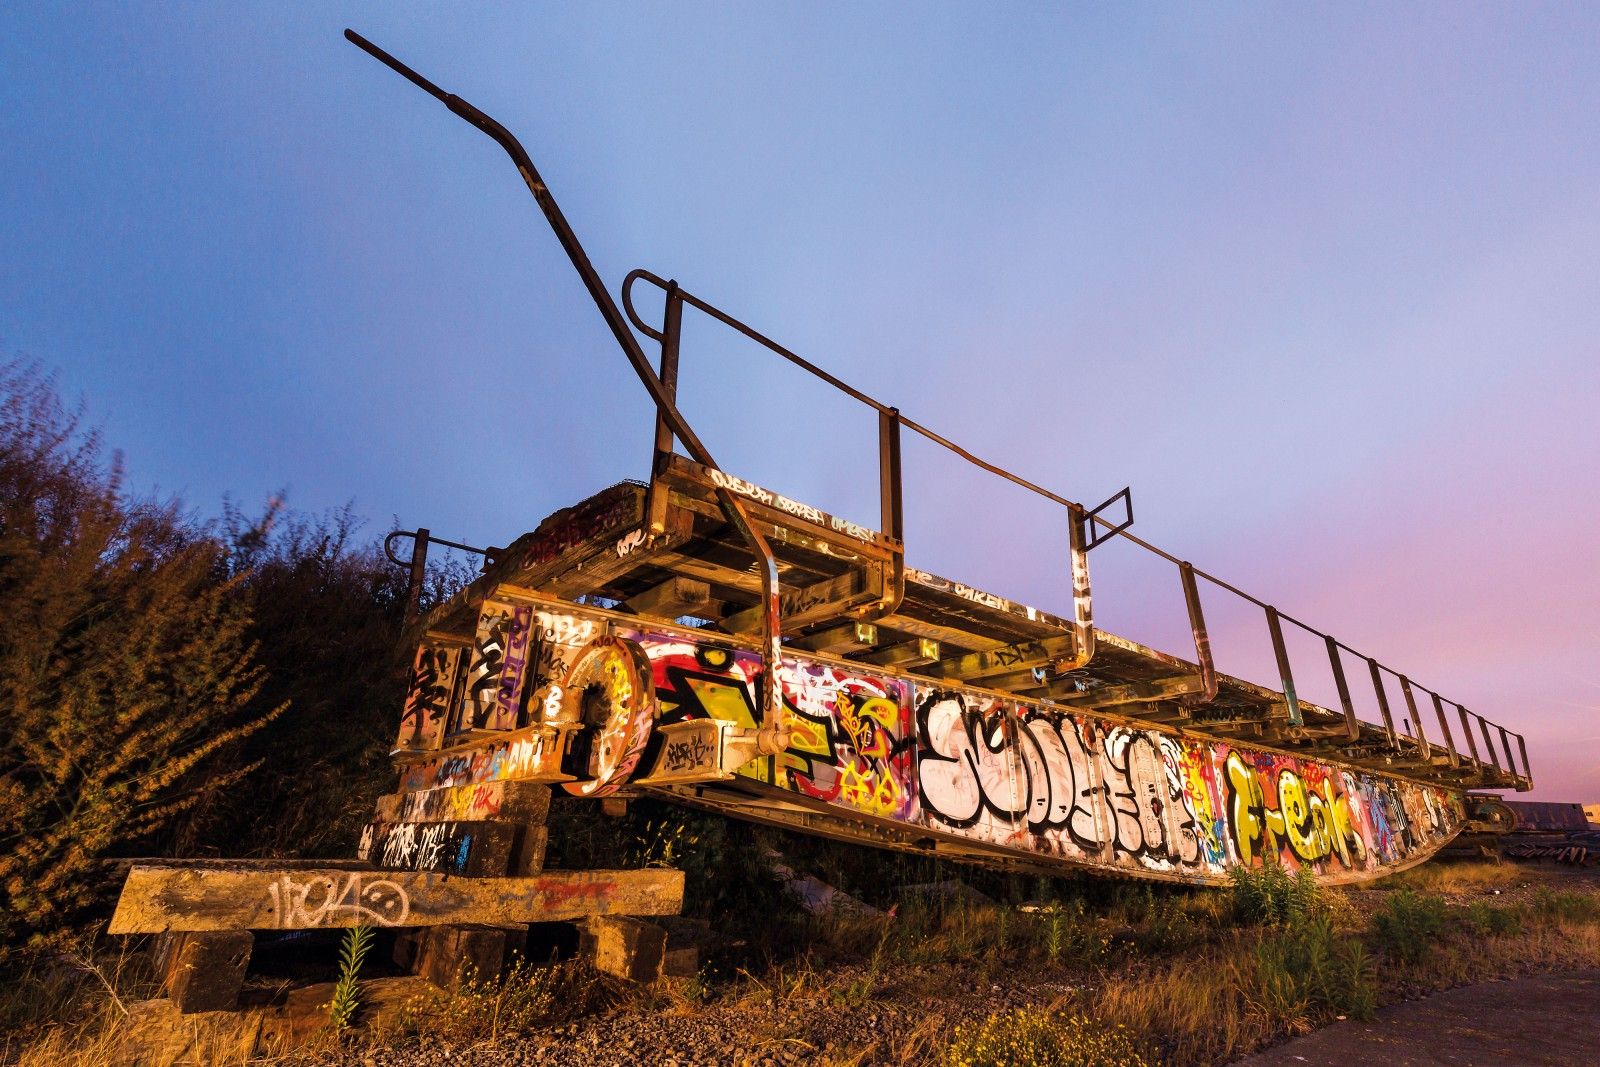 Decades of tags, including that of Wongi Wilson—going by his street pseudonym 'Freak'—adds several layers of paint to the rusting hulk of a retired railway turntable in the railyards in Waltham, Christchurch. Like others, Wilson has since graduated from tags to street art, which ironically owes its legitimacy to the movement of illegal graffiti.